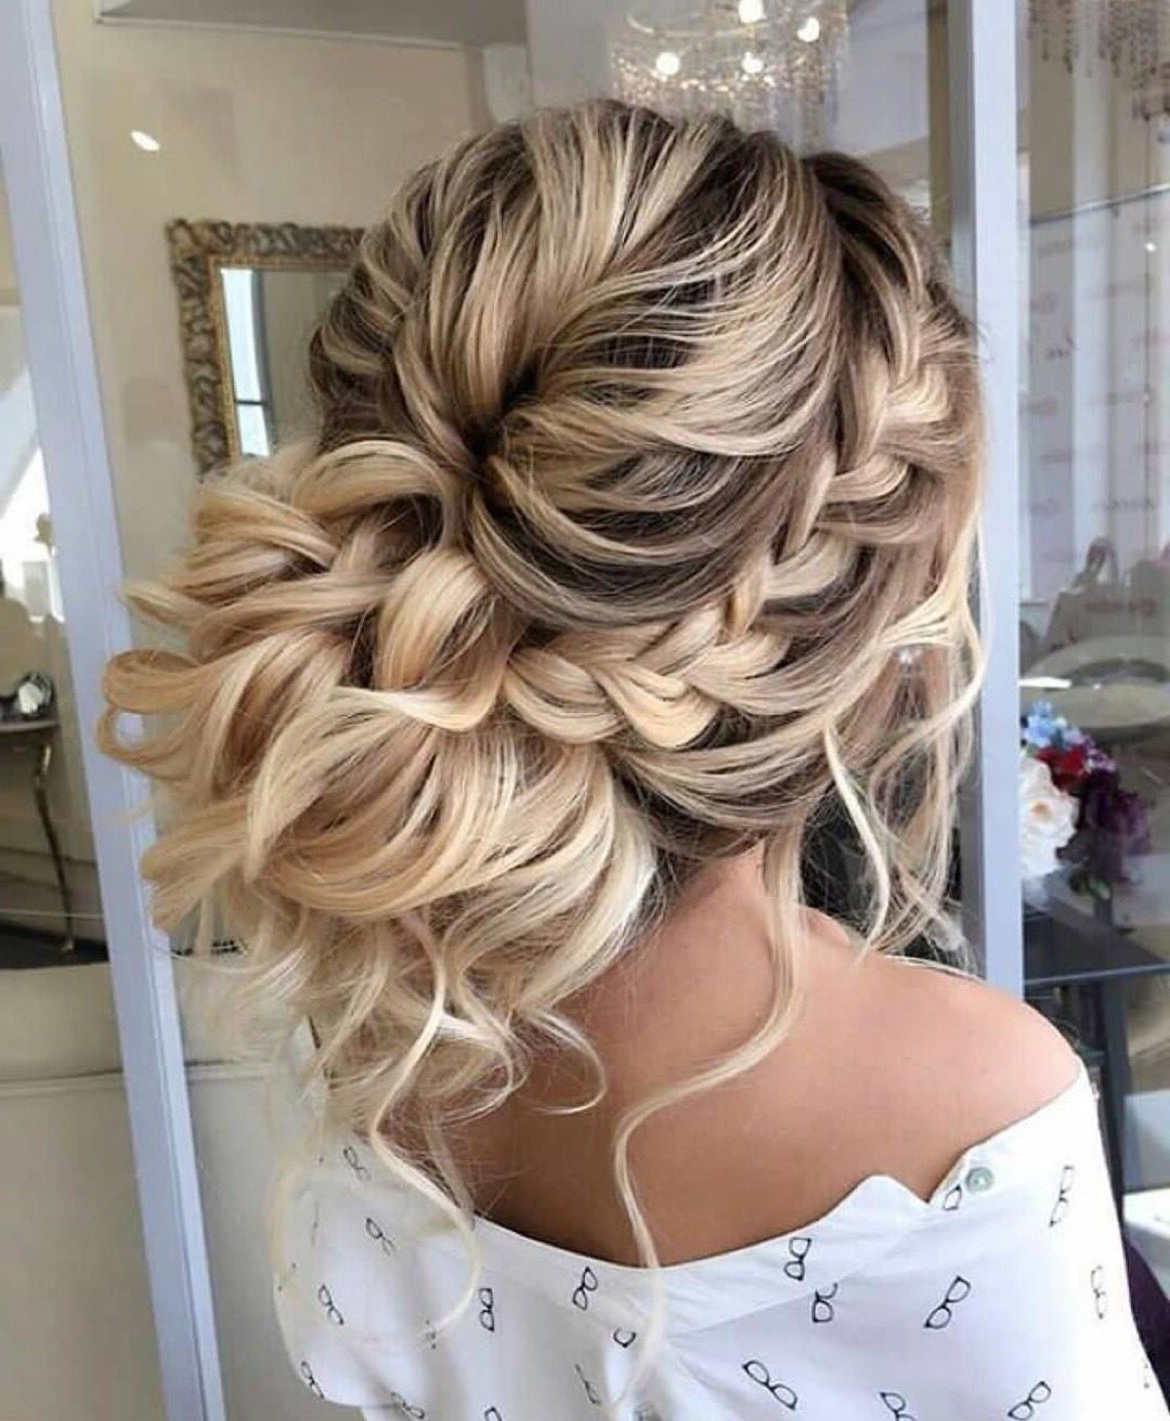 10 Beautiful Braids Hairstyles For Women (View 1 of 20)